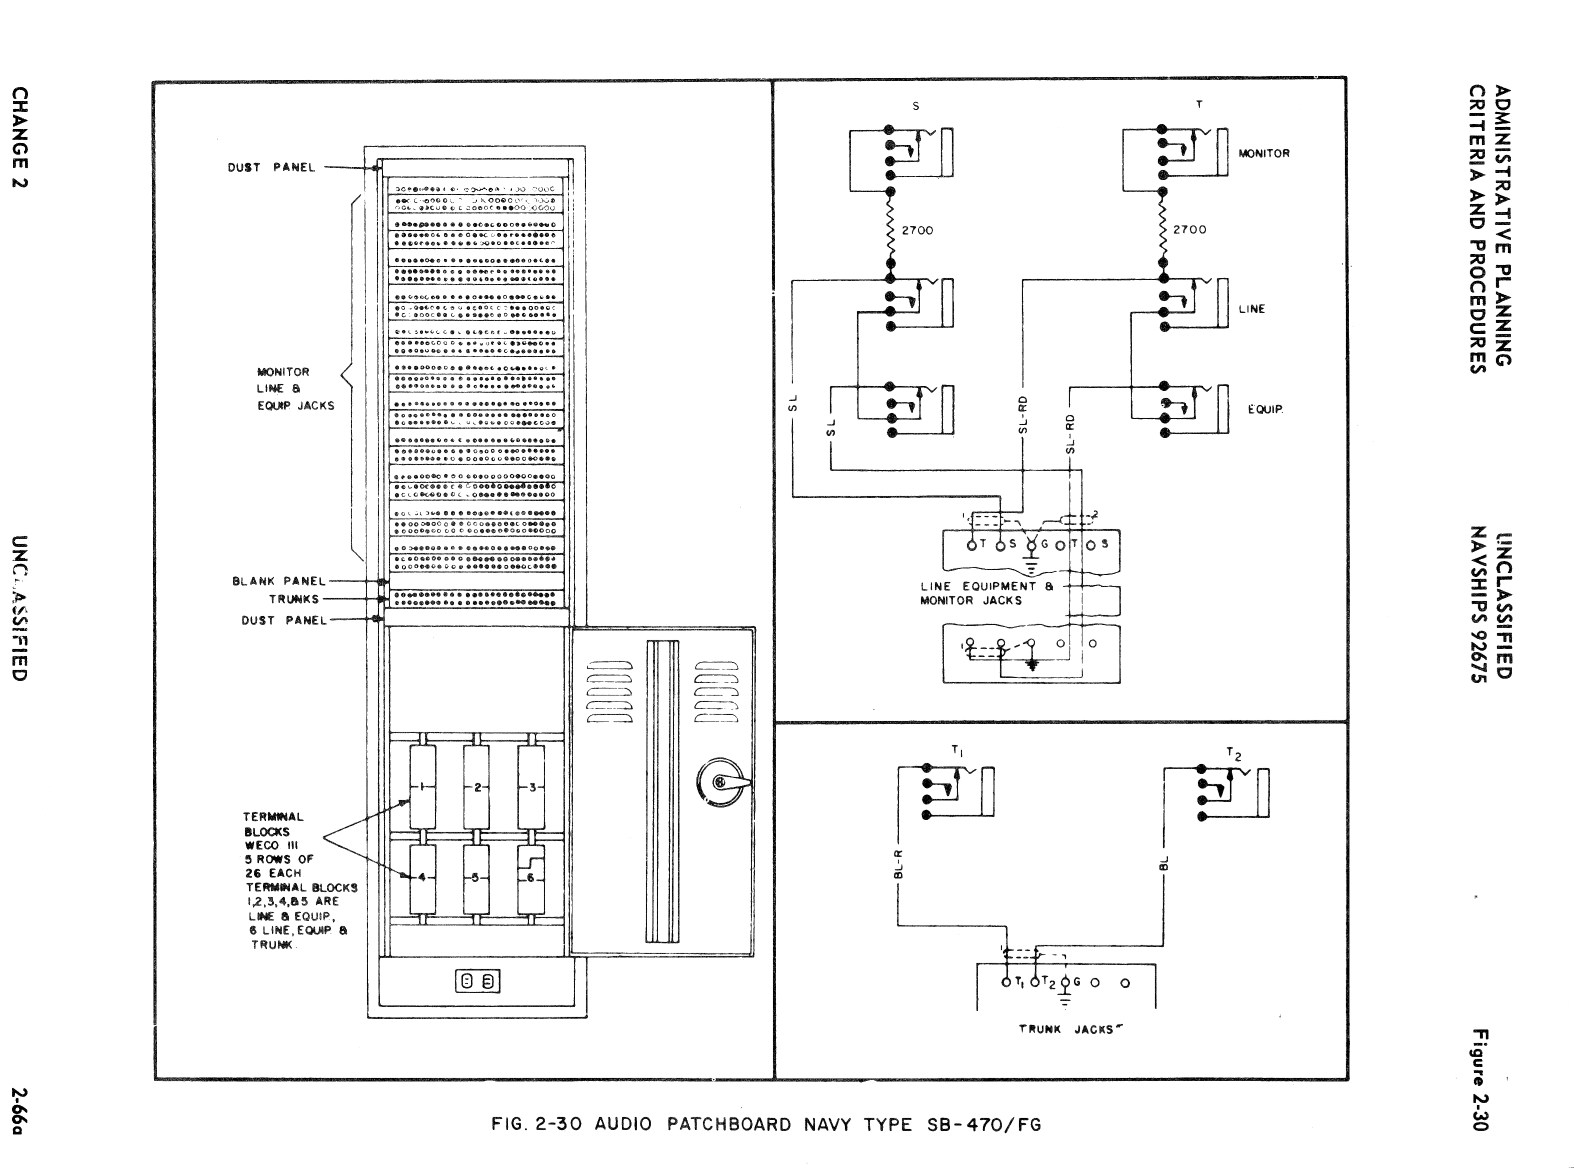 Navy Commsta Building Plans And Equipment Layout F G Block Diagram Shore 2 30 239059 Bytes